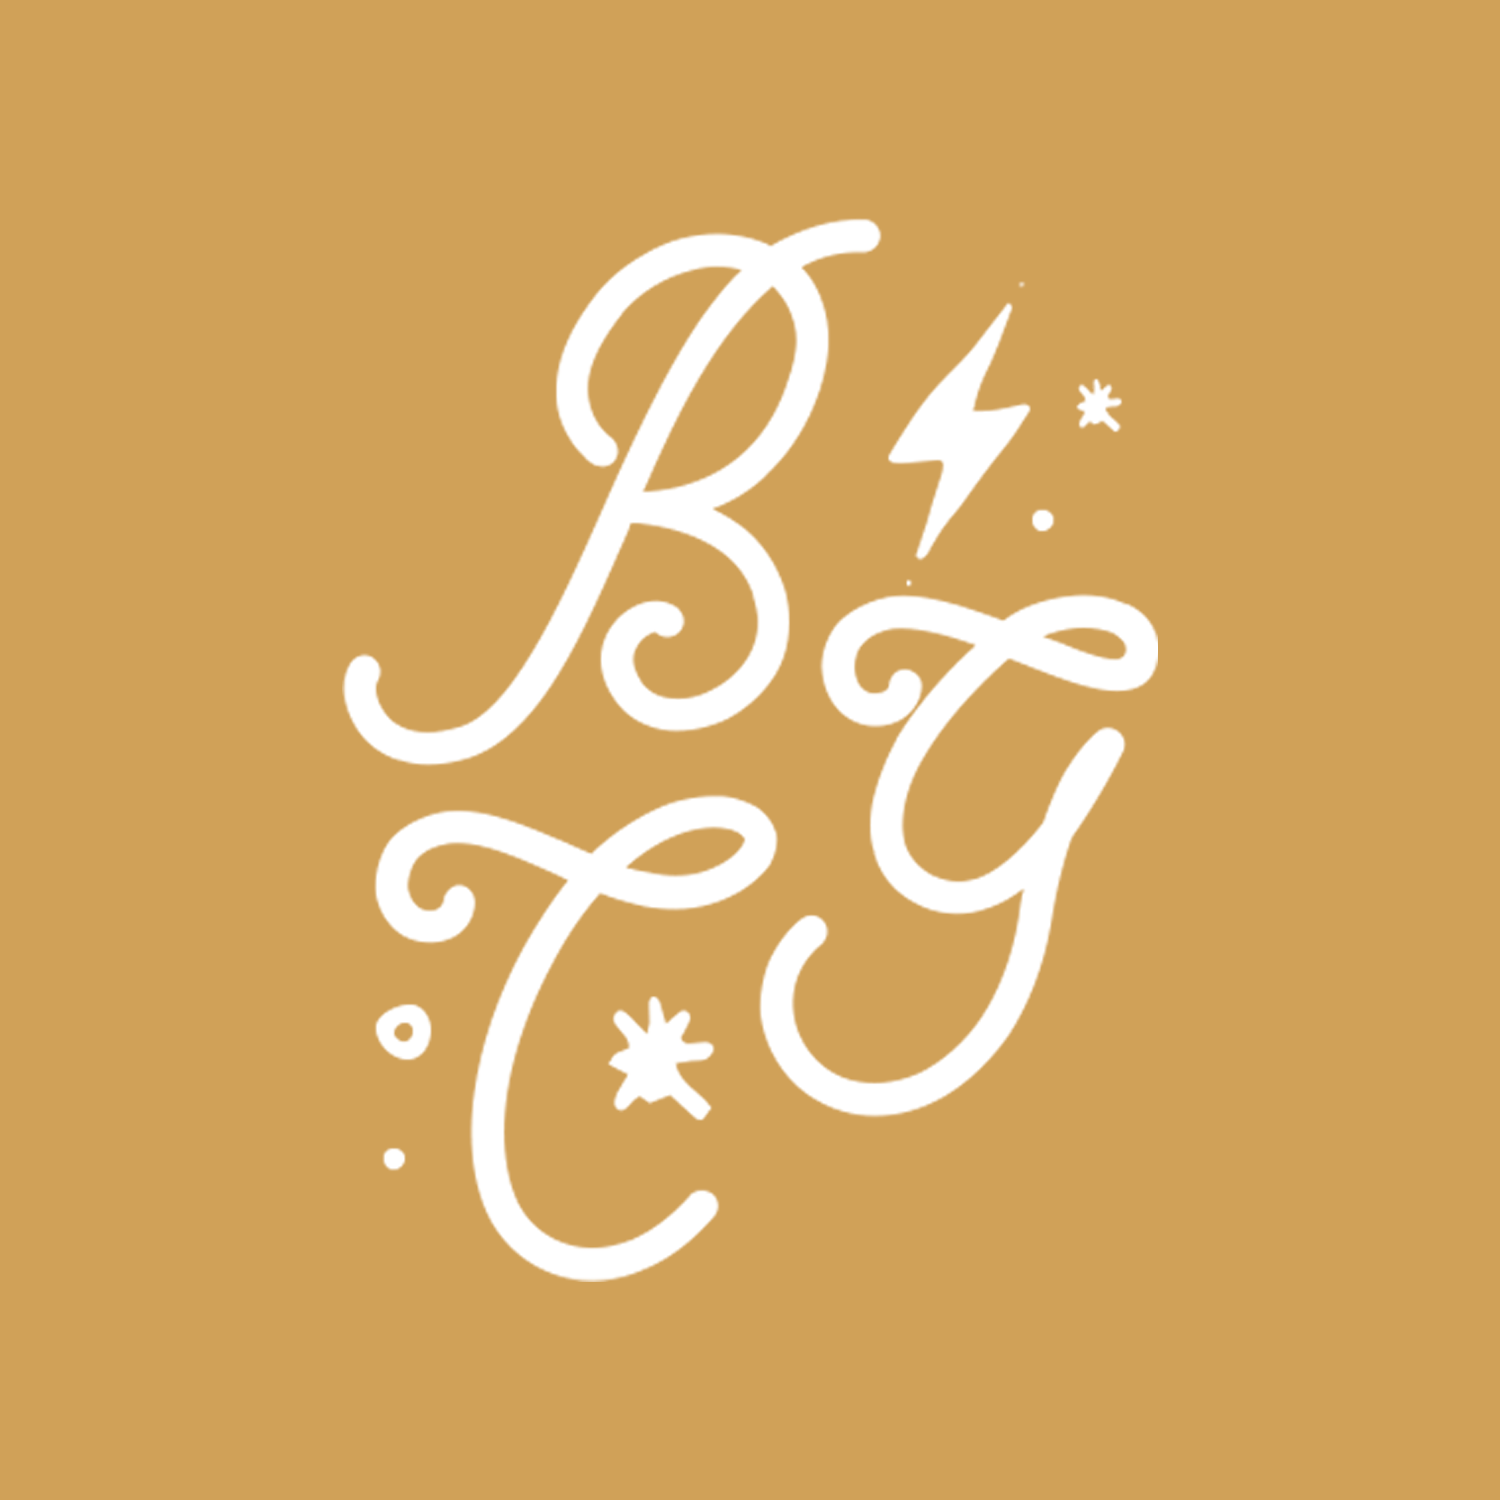 BGC+Cover (1).png